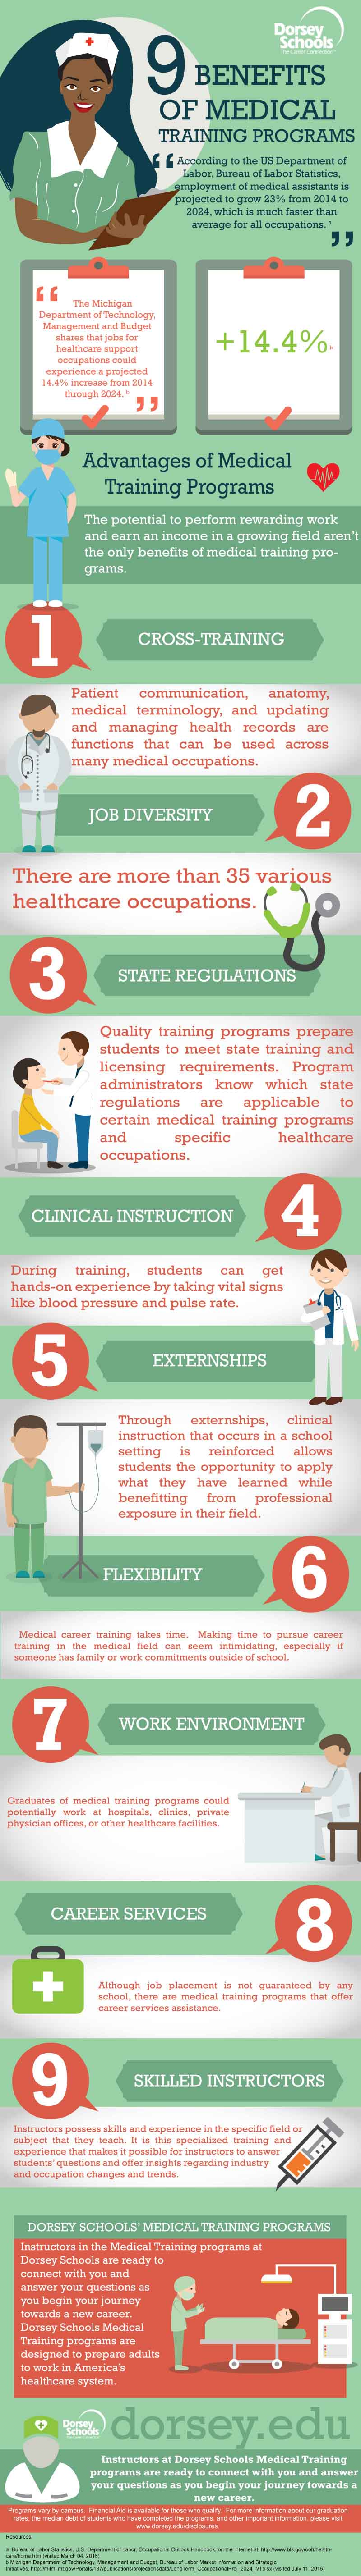 medical-training-programs-infographic-plaza